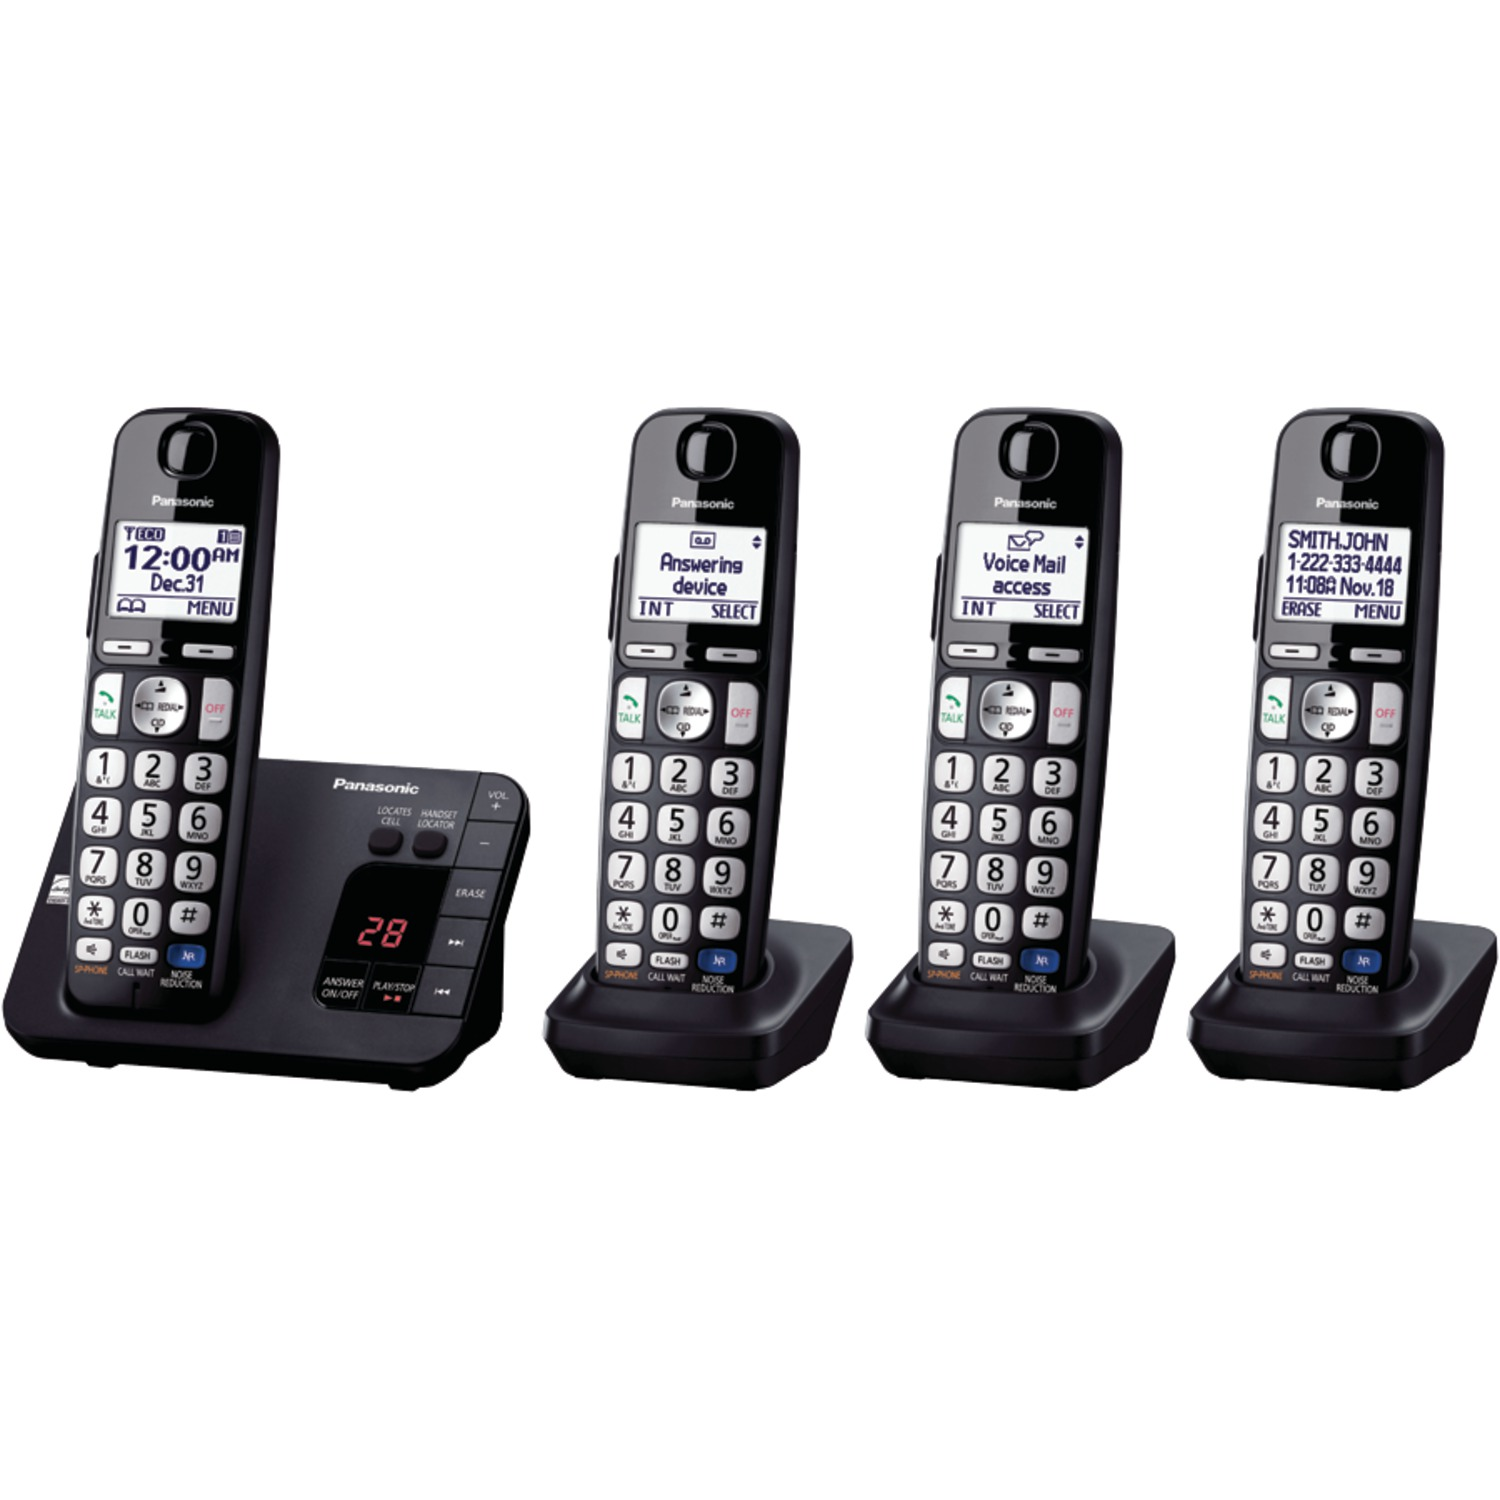 Panasonic KX-TGE234B Dect 6.0 Plus Expandable Digital Cordless Answering System (4-Handset System) by Panasonic